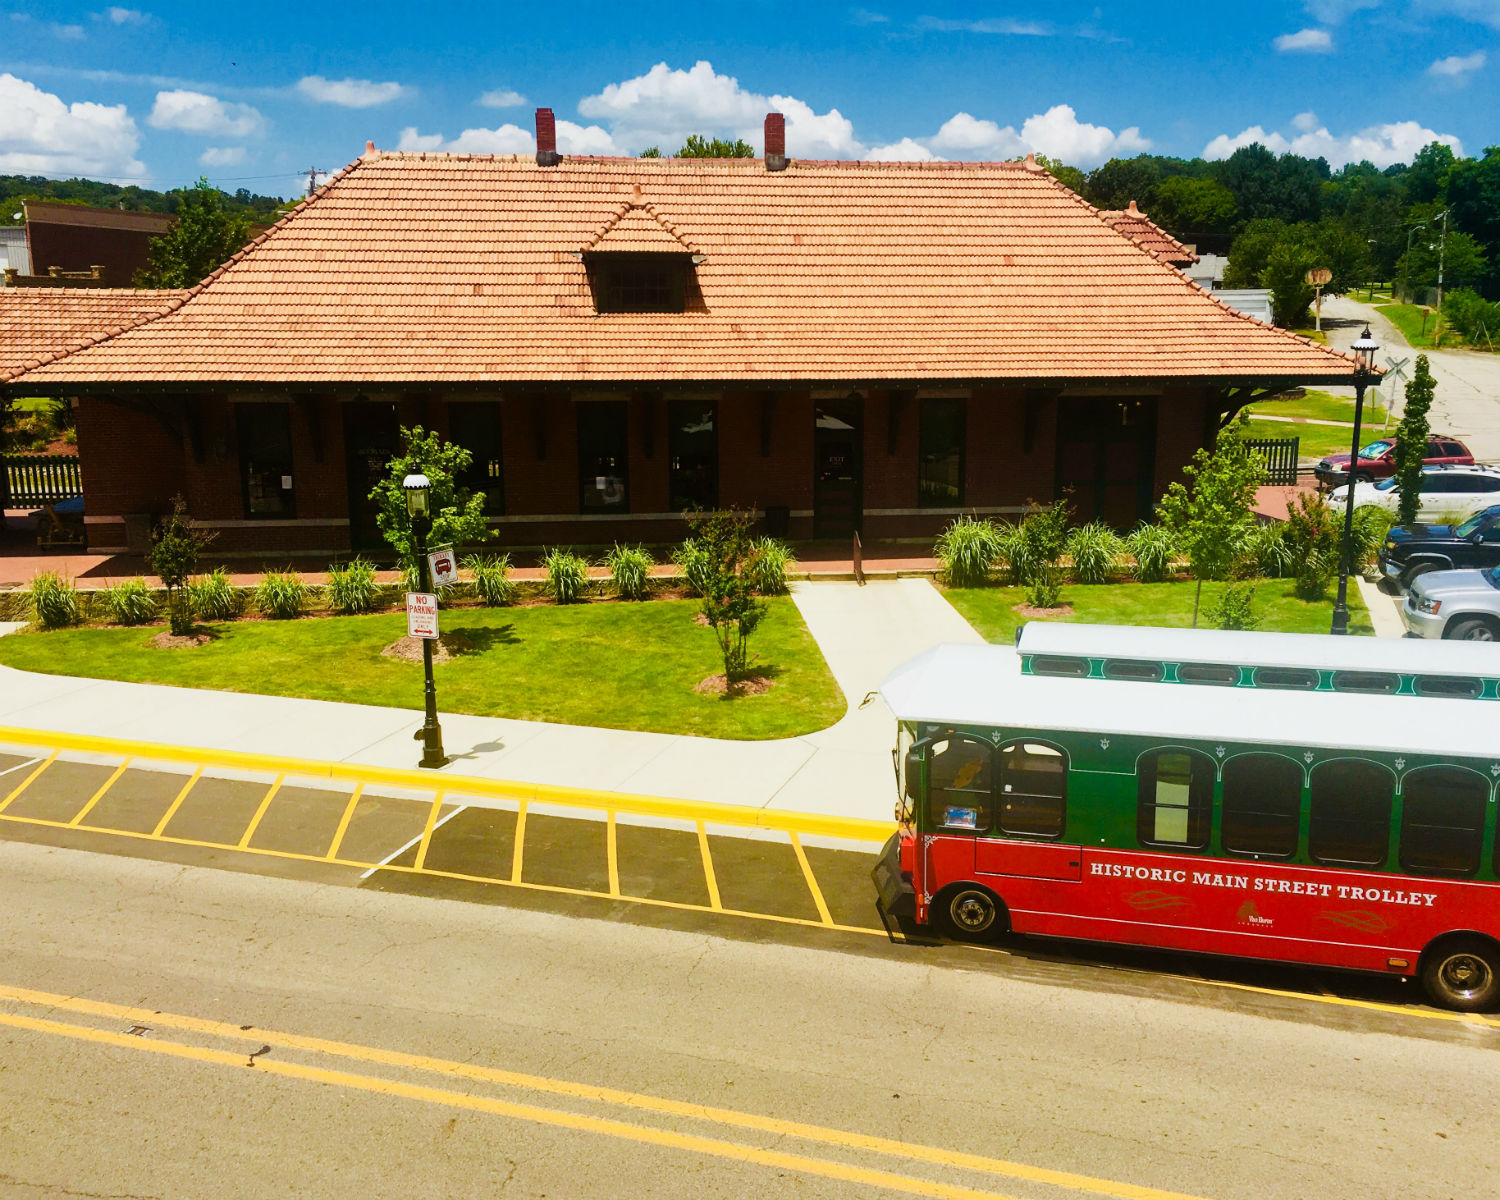 Historic main street Trolley station with trolley on street